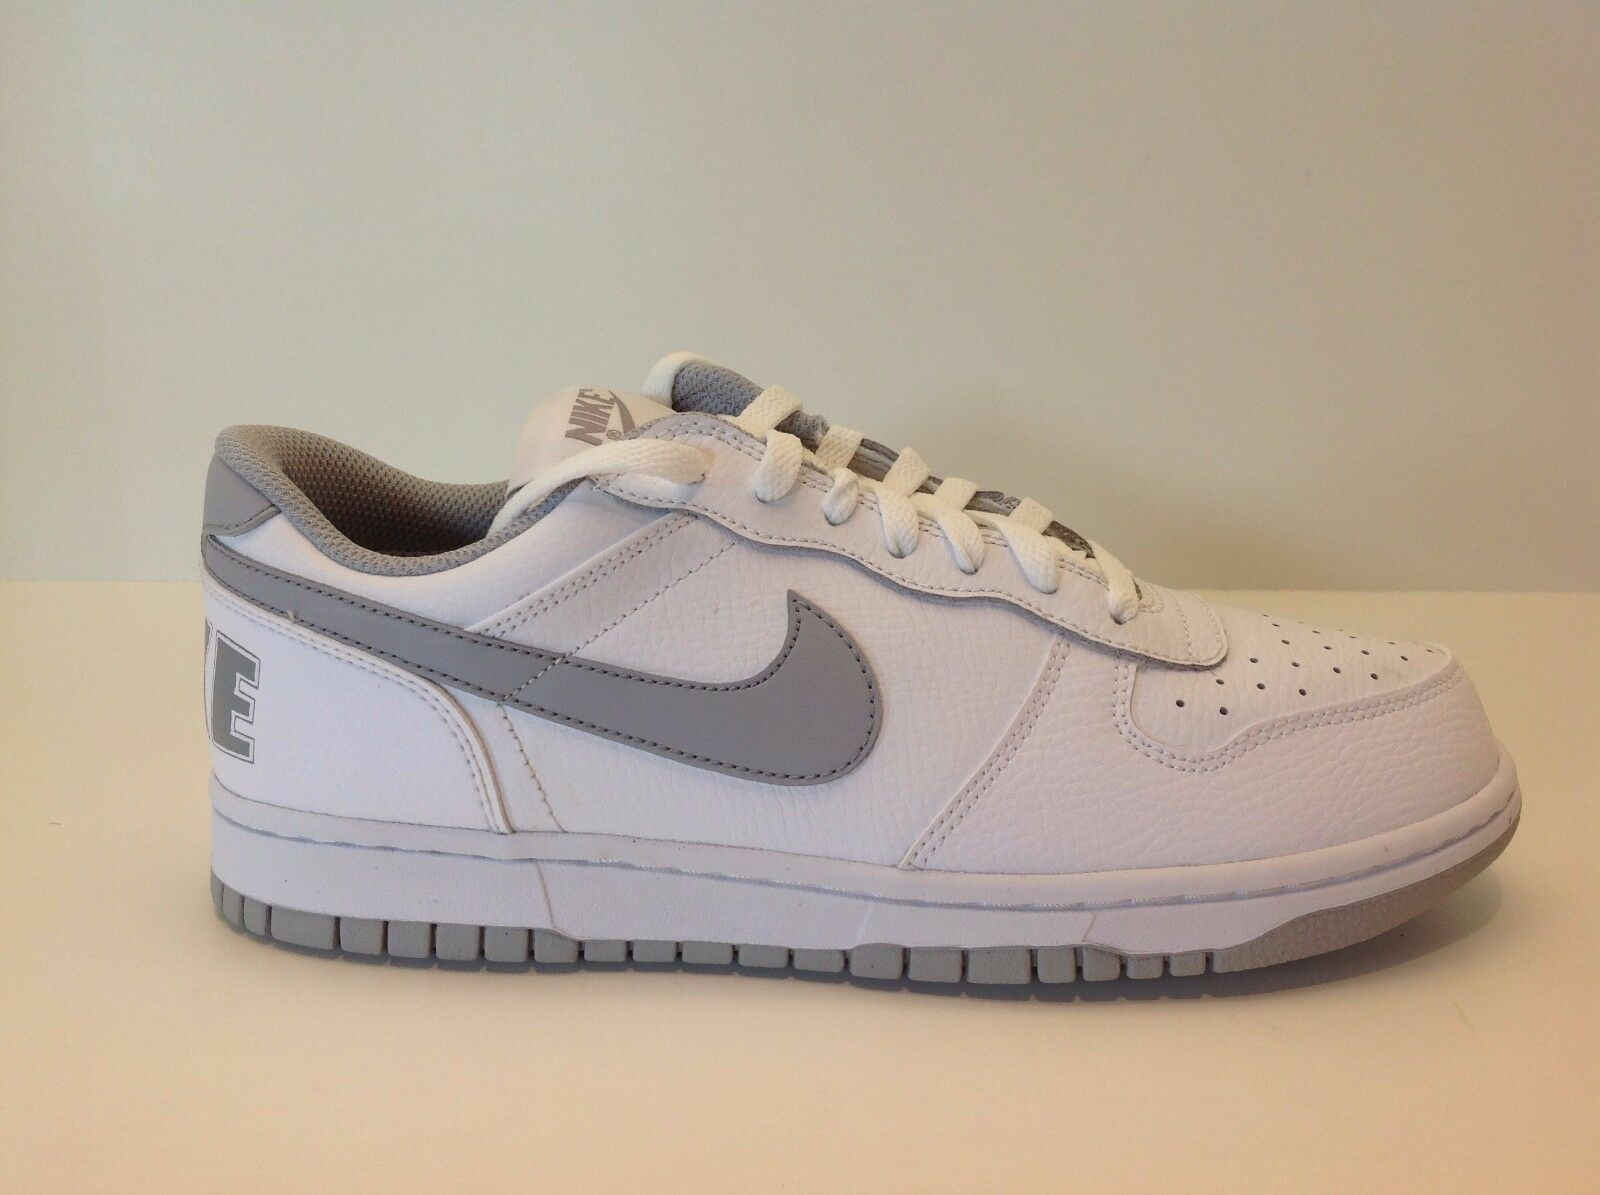 Big Nike Low White/Grey Men's Size 8-13 New in Box 355152 106